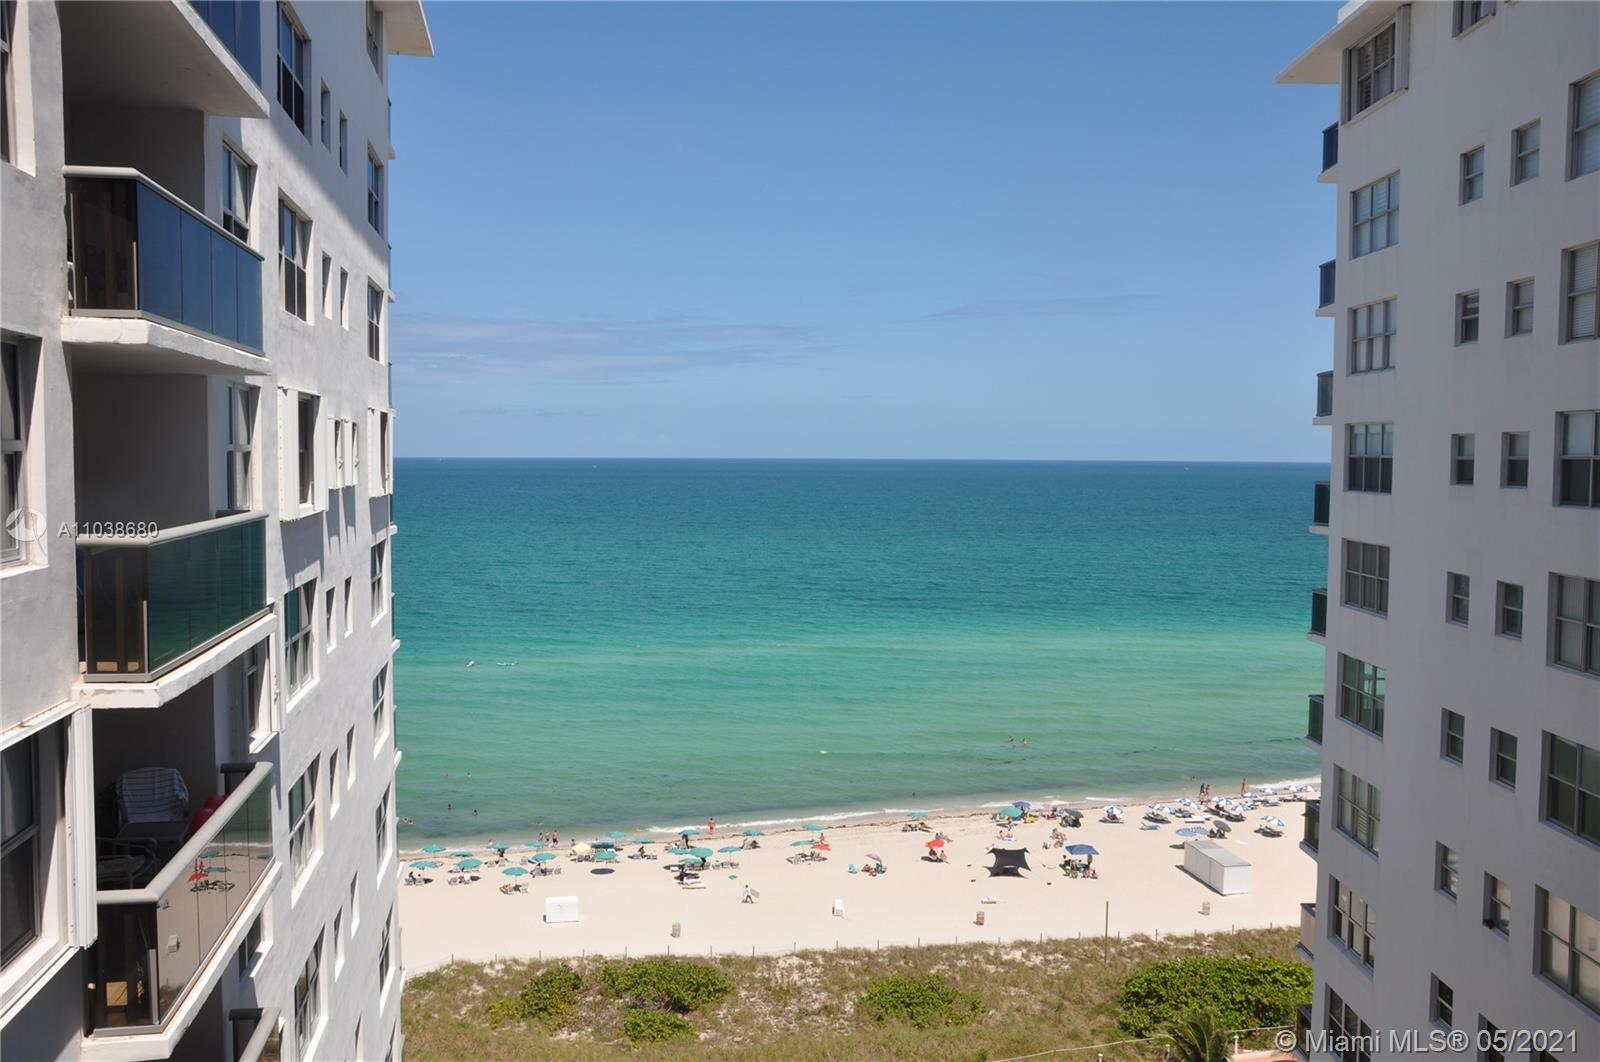 Stunning oceanfront views from this 1bed 1-1/2 bath condo in Miami Beach. You will fall in love with